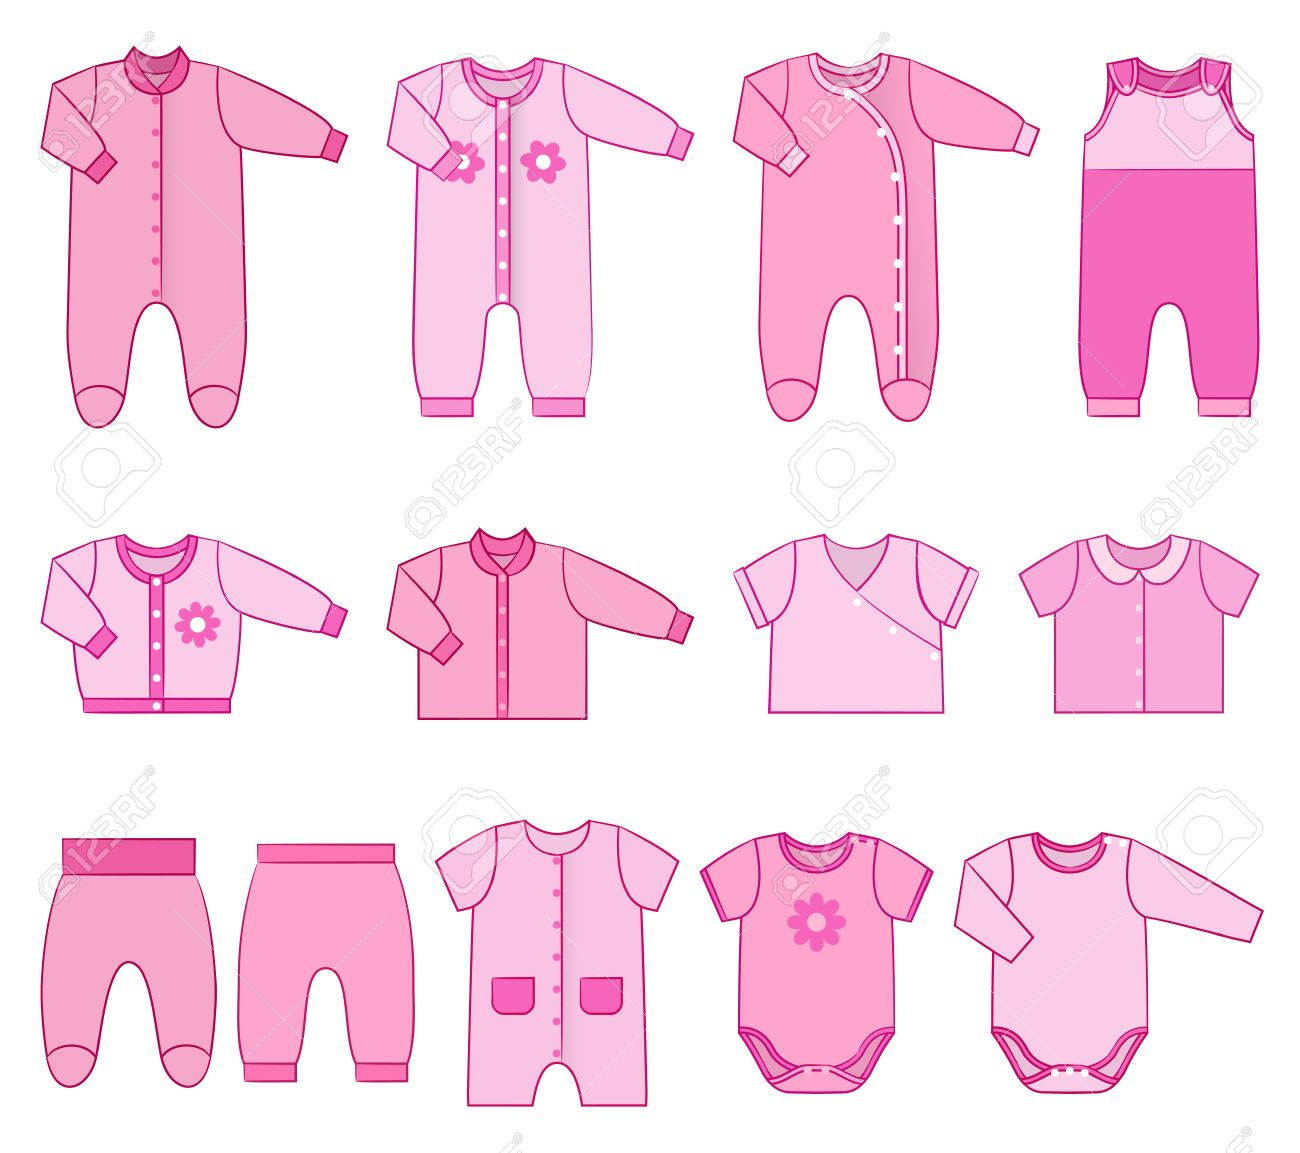 c26b0b93a Baby clothes. Garments for infant girls. Vector. Kids bodysuits, overalls,  rompers